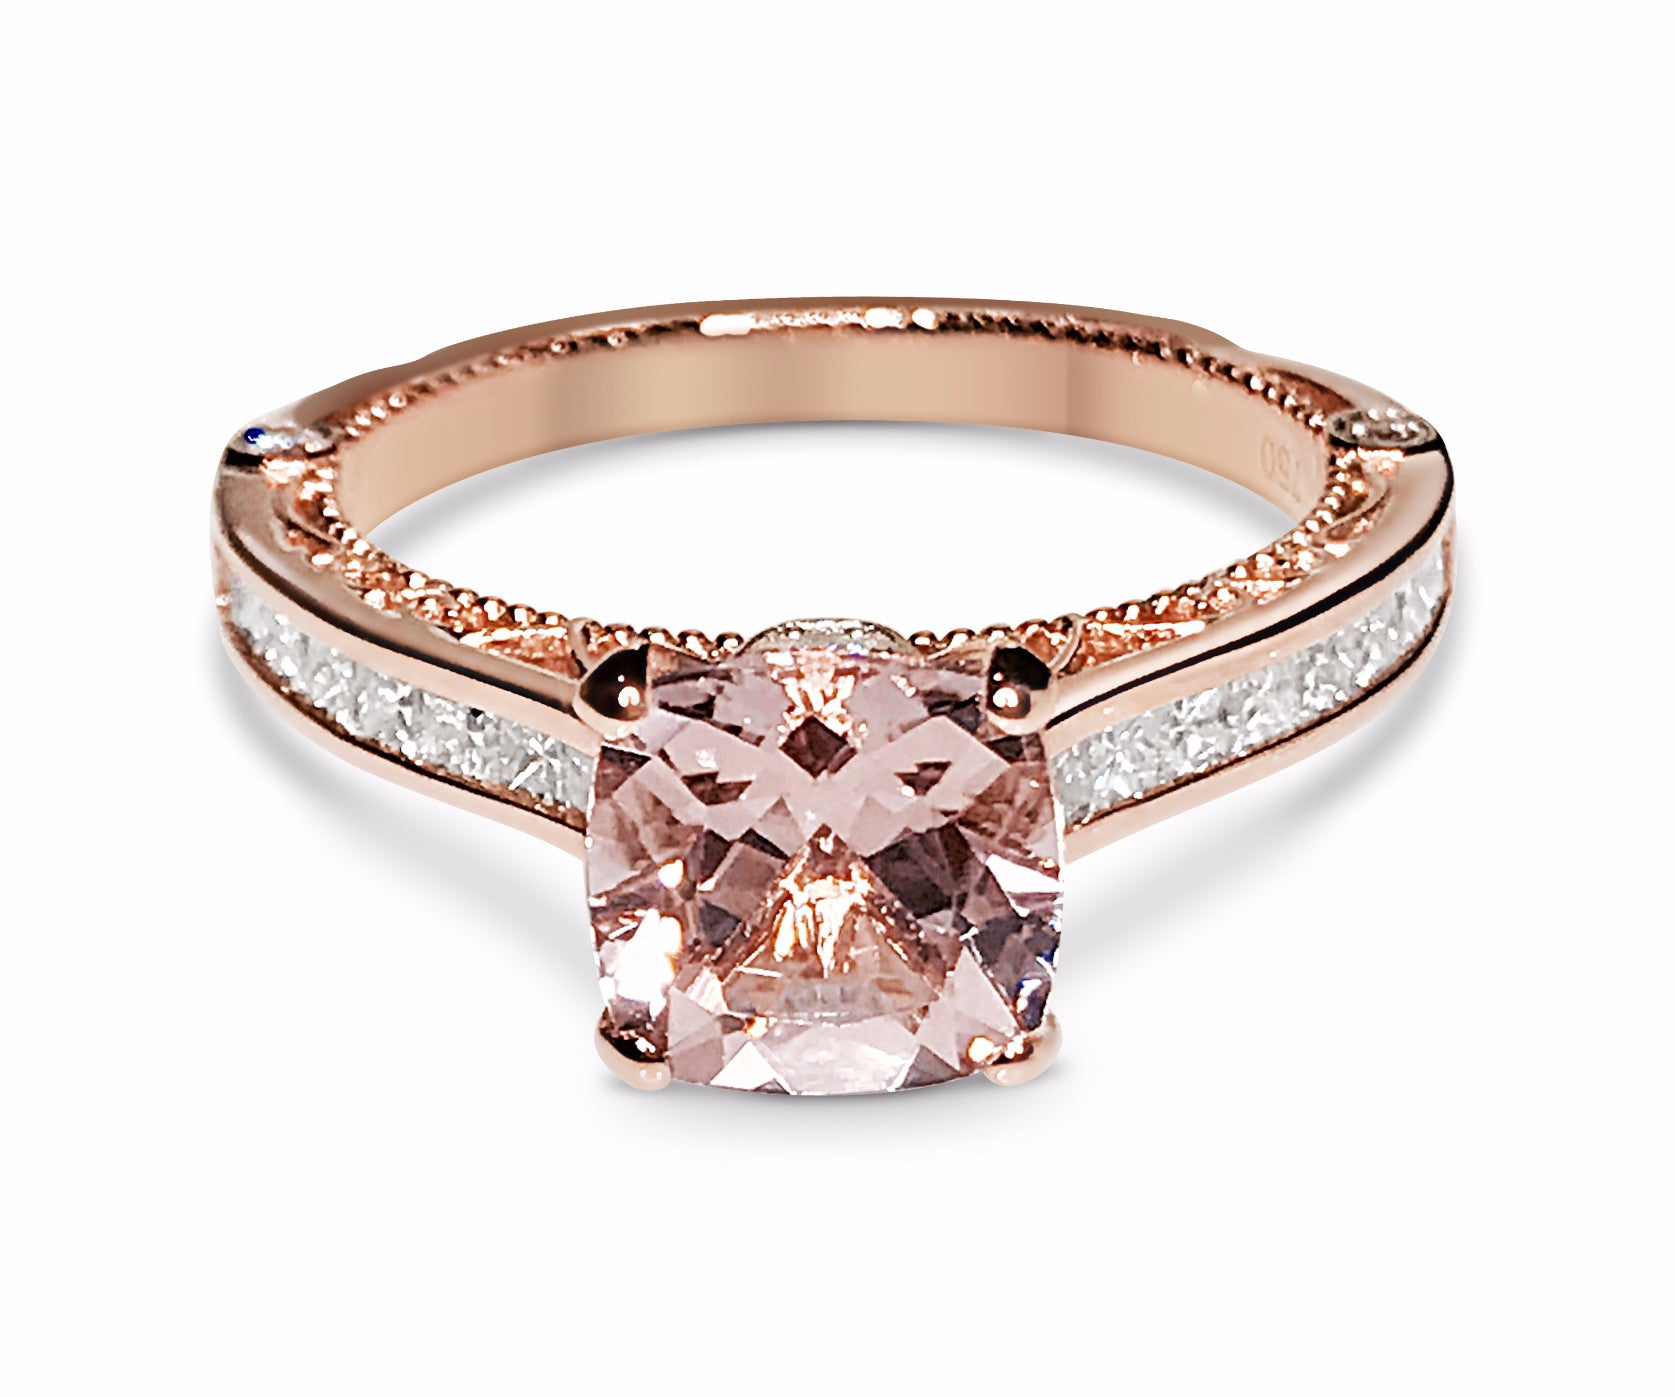 jewelry goldtone gold rings ring amazon carat cut dp engagement rose blush com oval cz